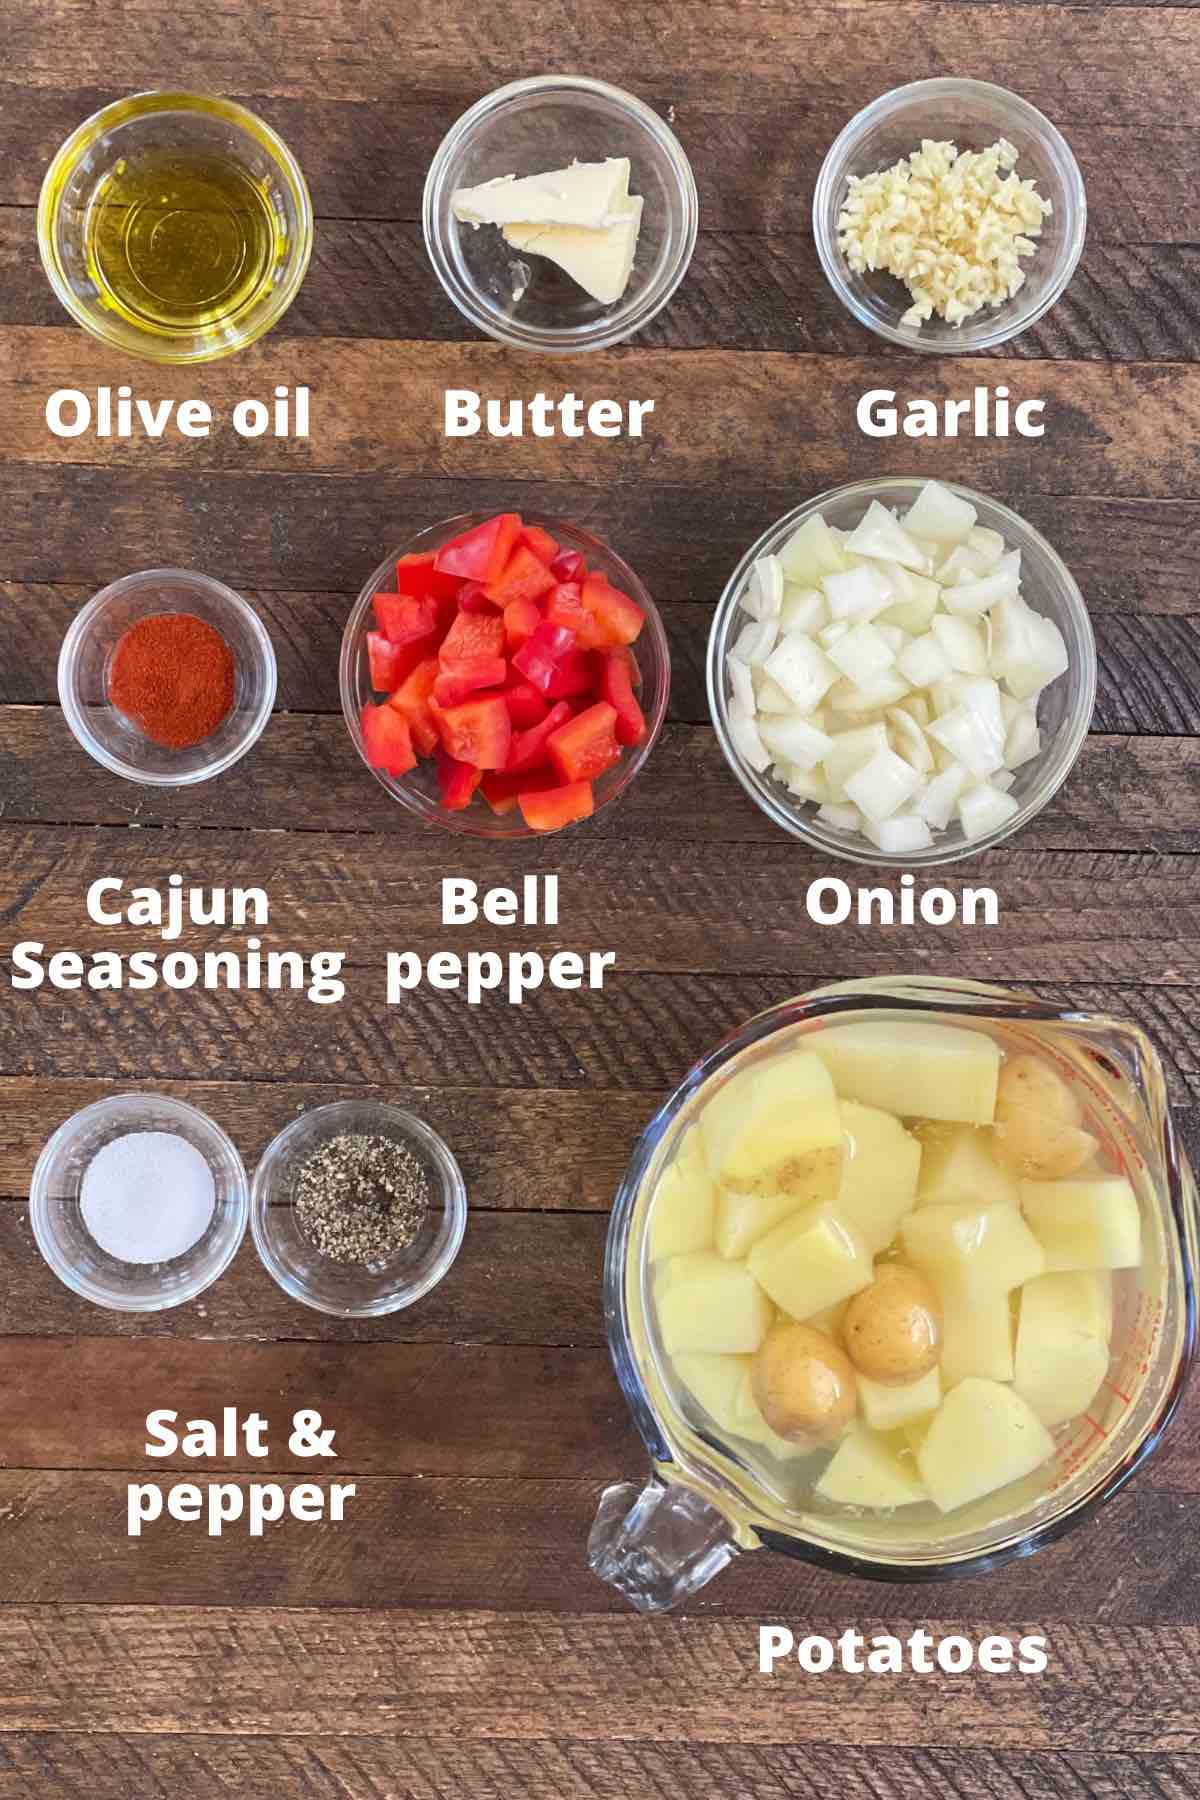 Ingredients for smothered potatoes